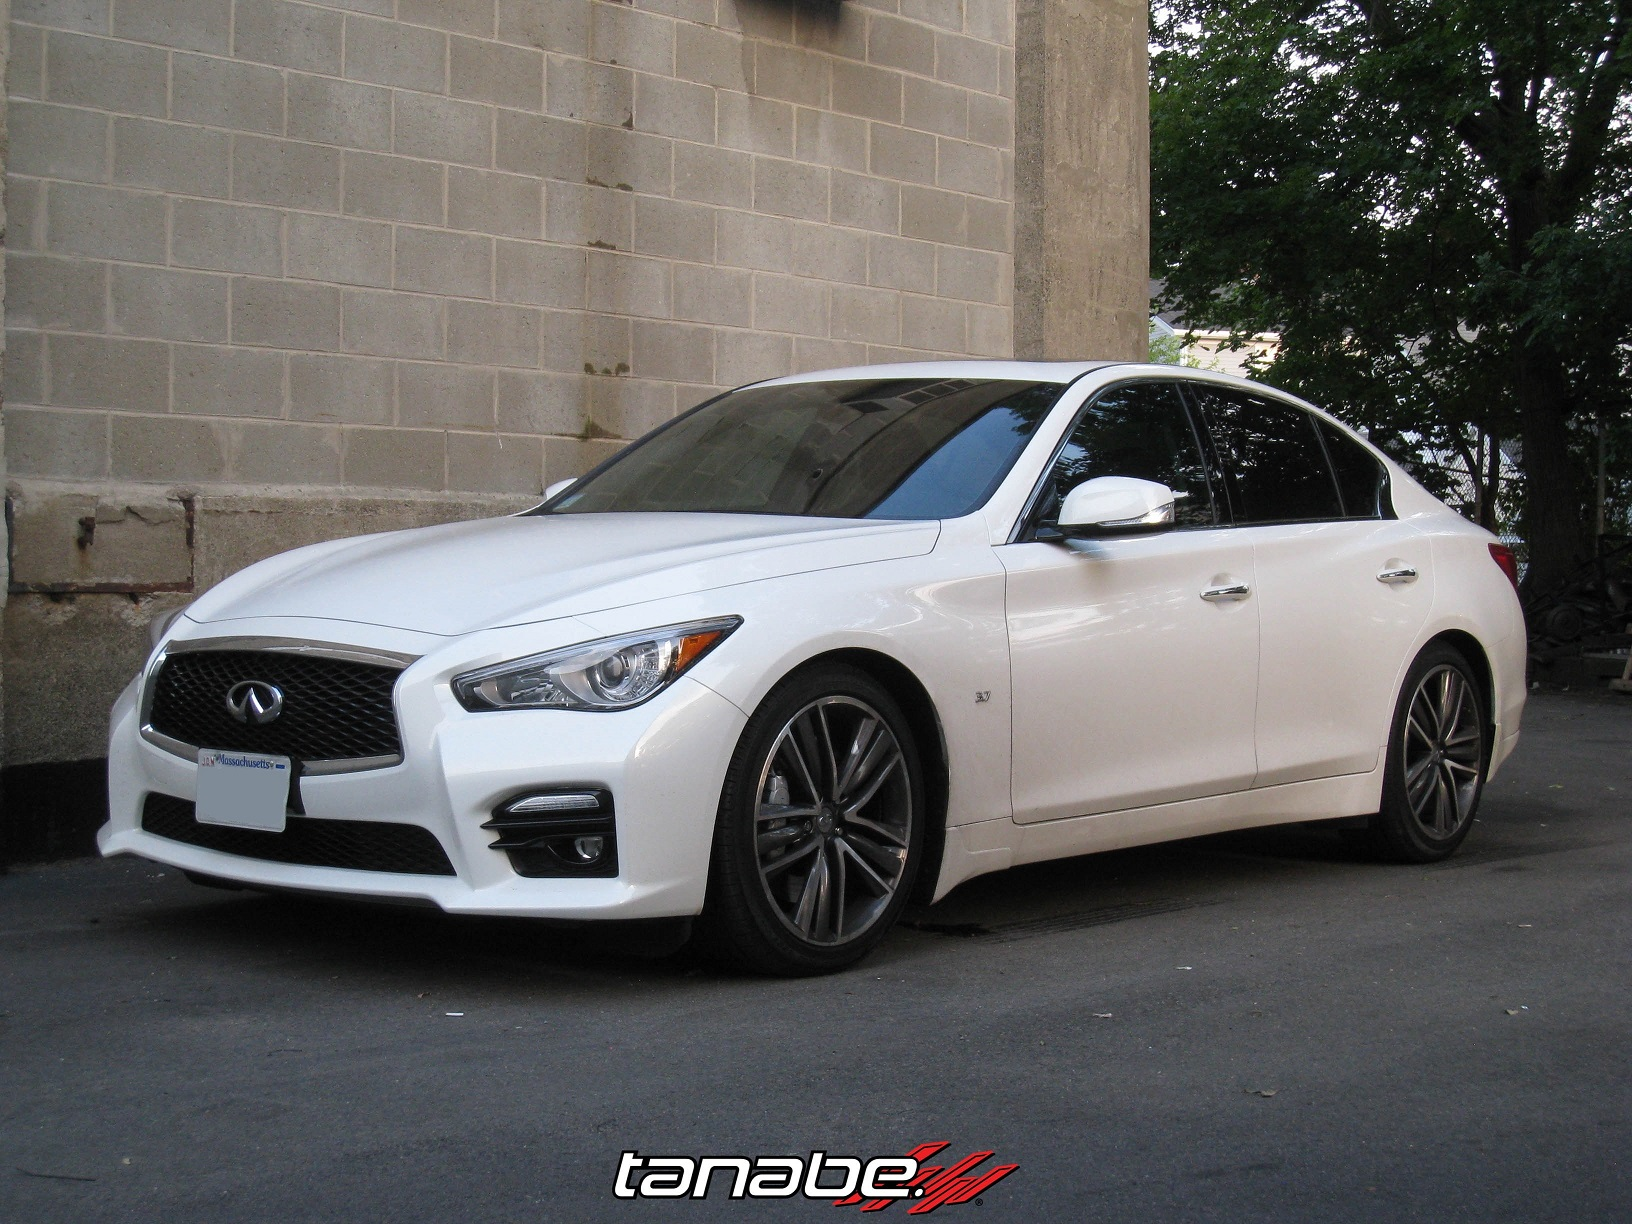 tanabe sustec nf210 infinity q50 2014 2016 q50 s base awd red sport 400 awd. Black Bedroom Furniture Sets. Home Design Ideas